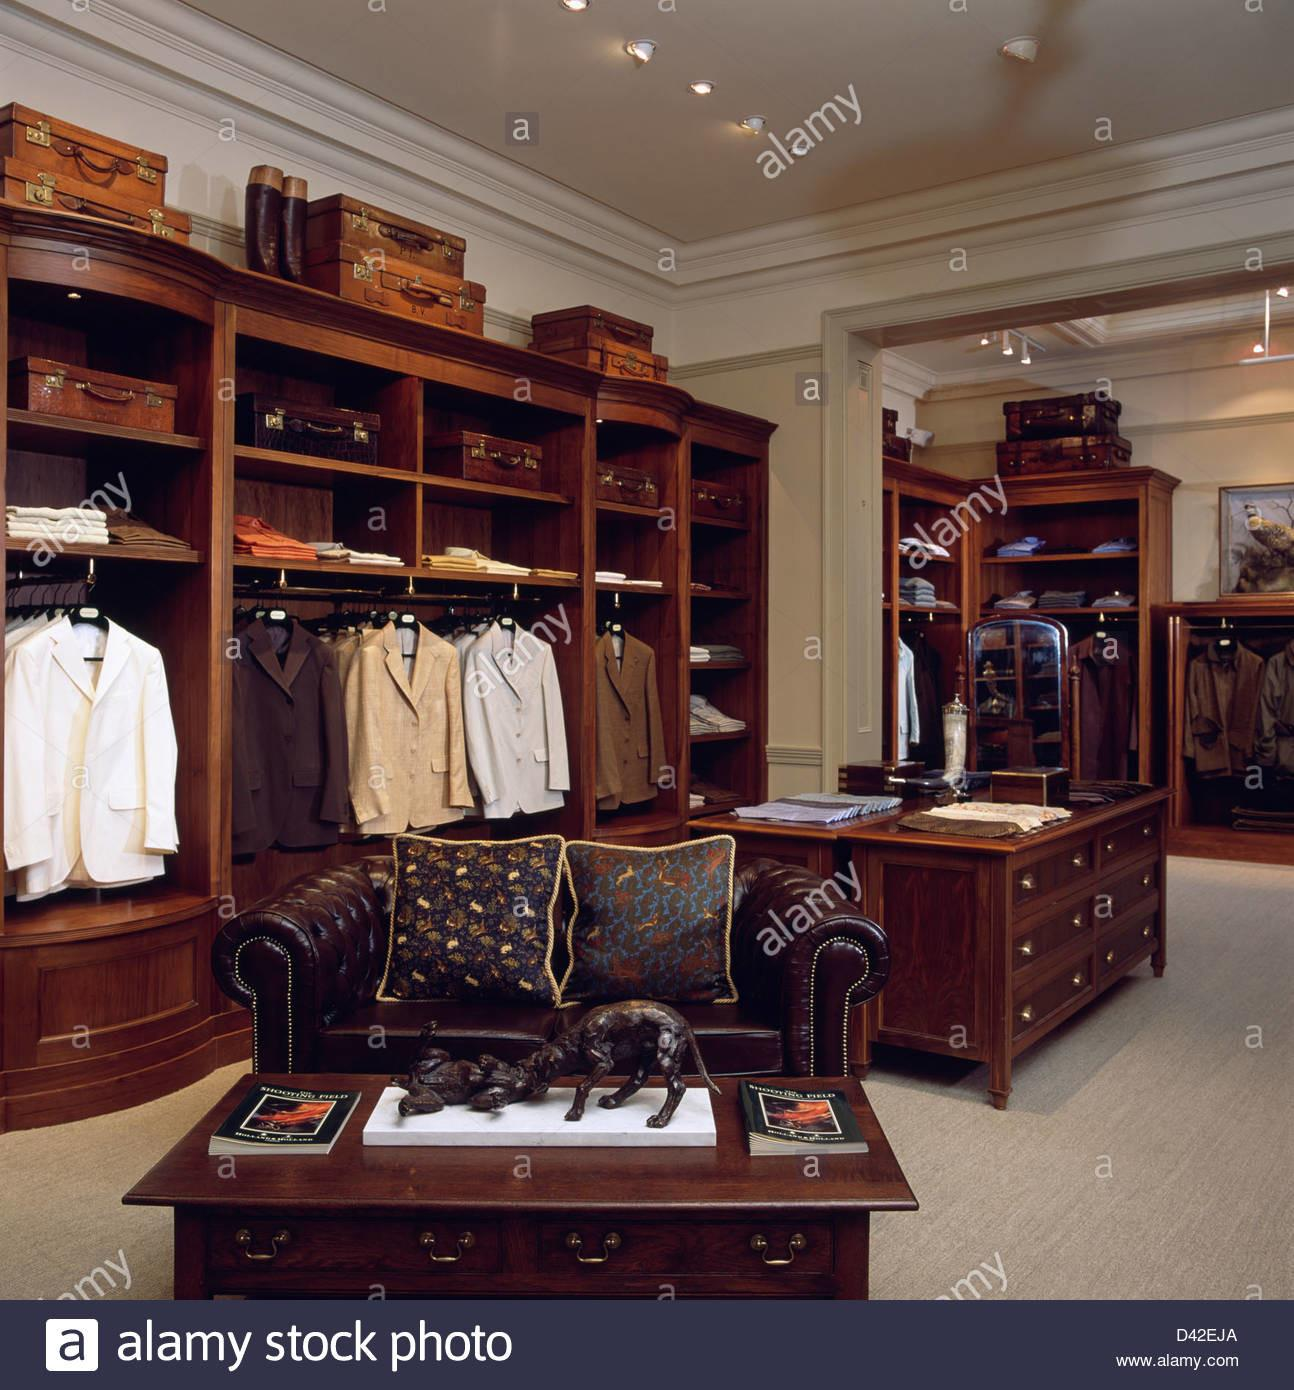 Interior Luxury Gentleman Outfitters London